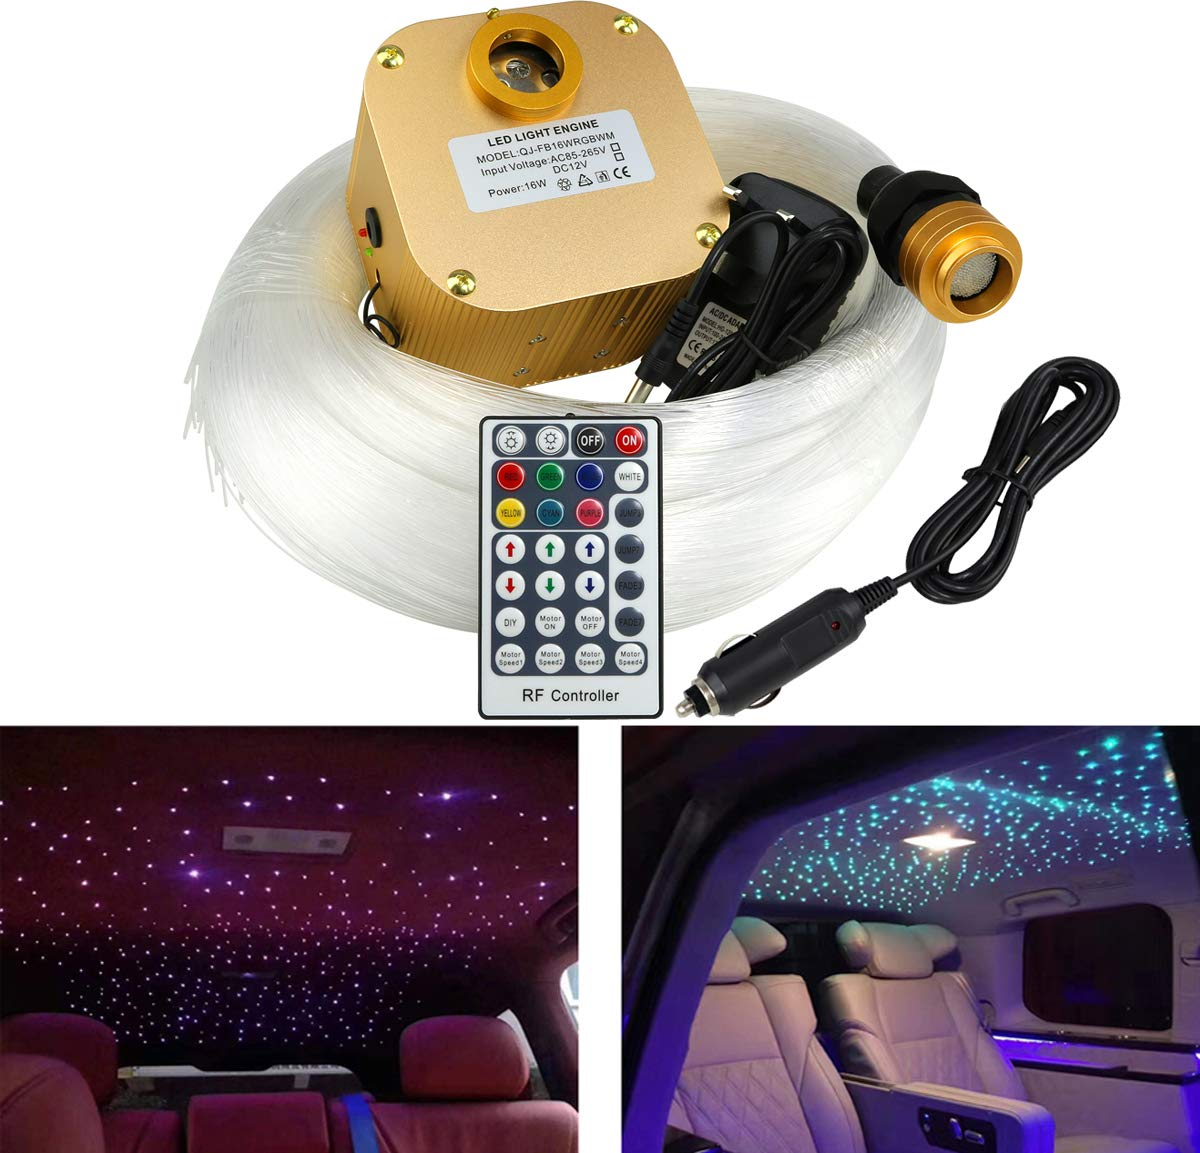 AZIMOM LED Fiber Optic Star Ceiling Light Kit 16W Twinkle RGBW Engine Drive with RF 28 Key Remote for Indoor Car Interior Decoration Mixed 430pcs (0.03+0.04+0.06) in 9.8ft